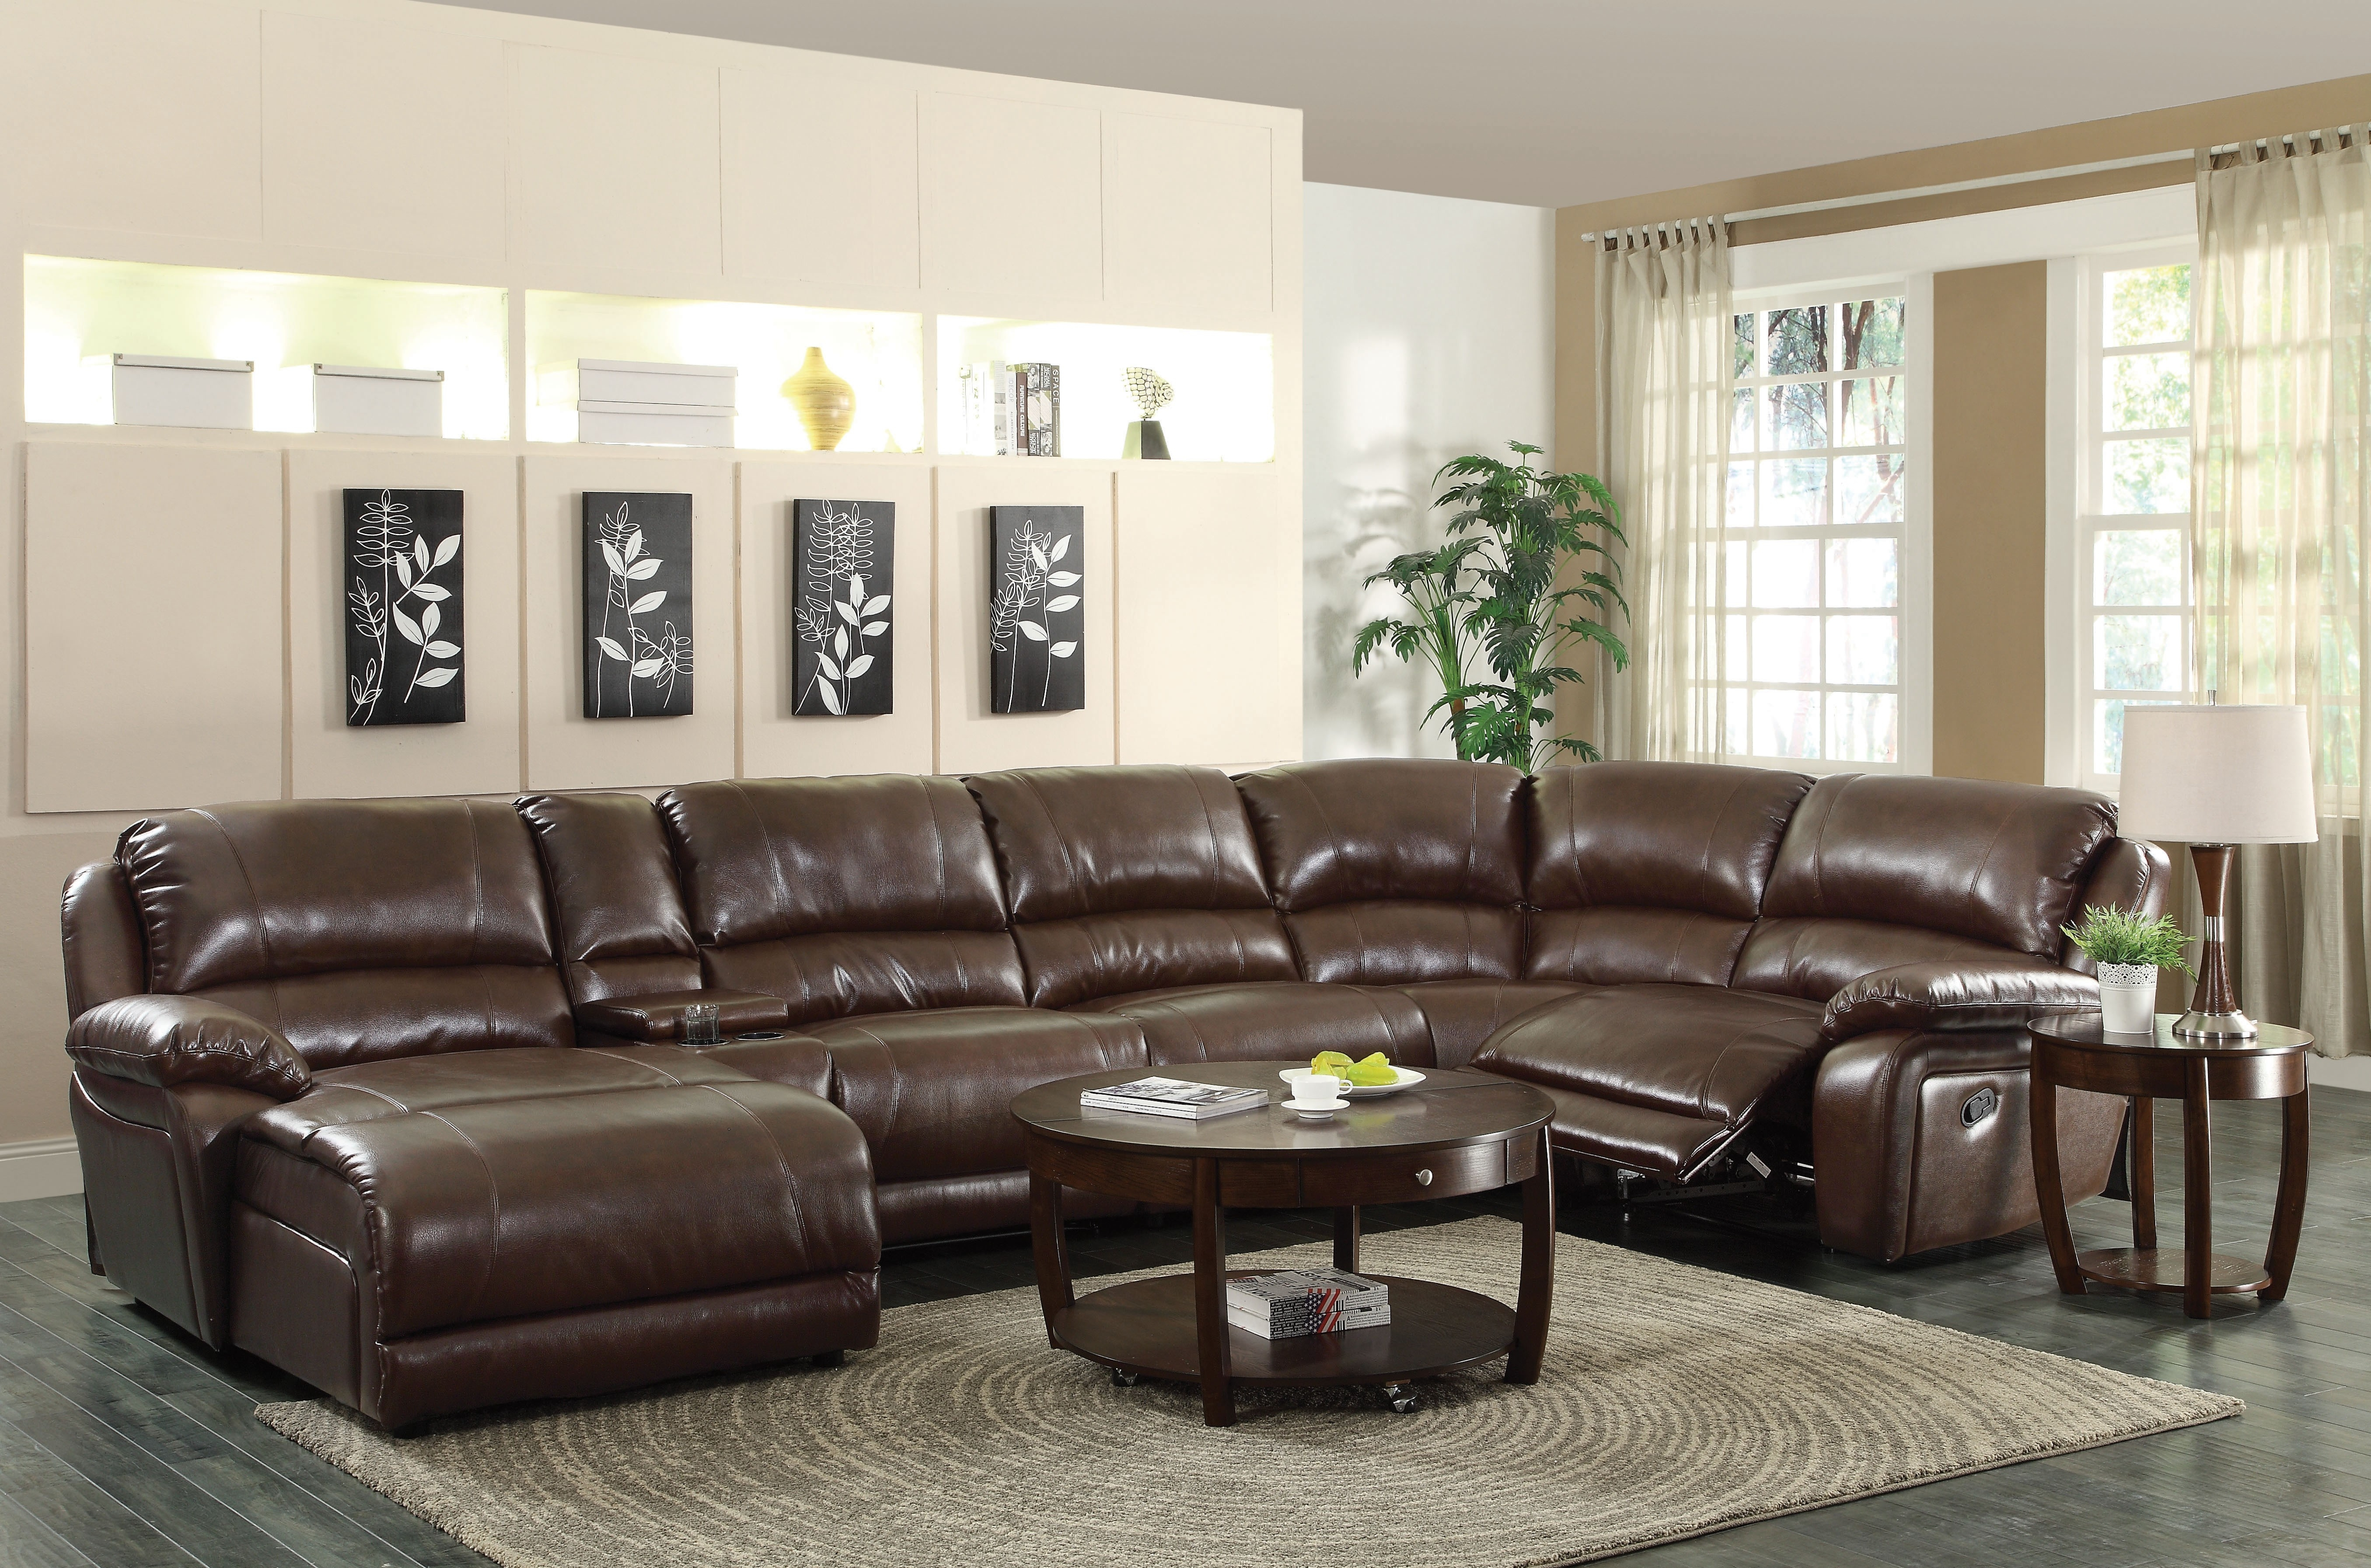 Brown Leather Sectional Sofa With Chaise Inside 6 Piece Leather Sectional Sofa (Photo 6 of 15)